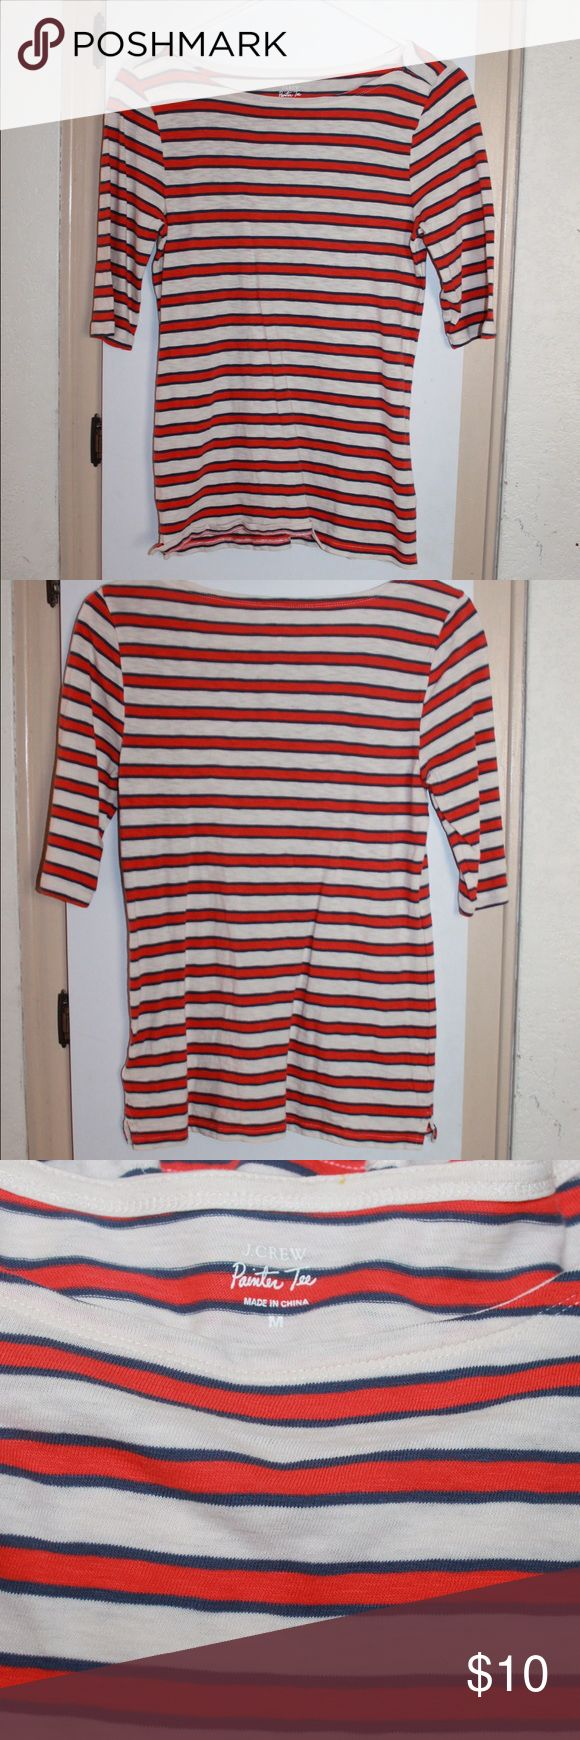 J. Crew painters Tee striped super cute 3/4 sleeve J Crew painters Tee striped super cute 3/4 sleeves new without price tag but still has the inside tag shown in picture 4 J. Crew Tops